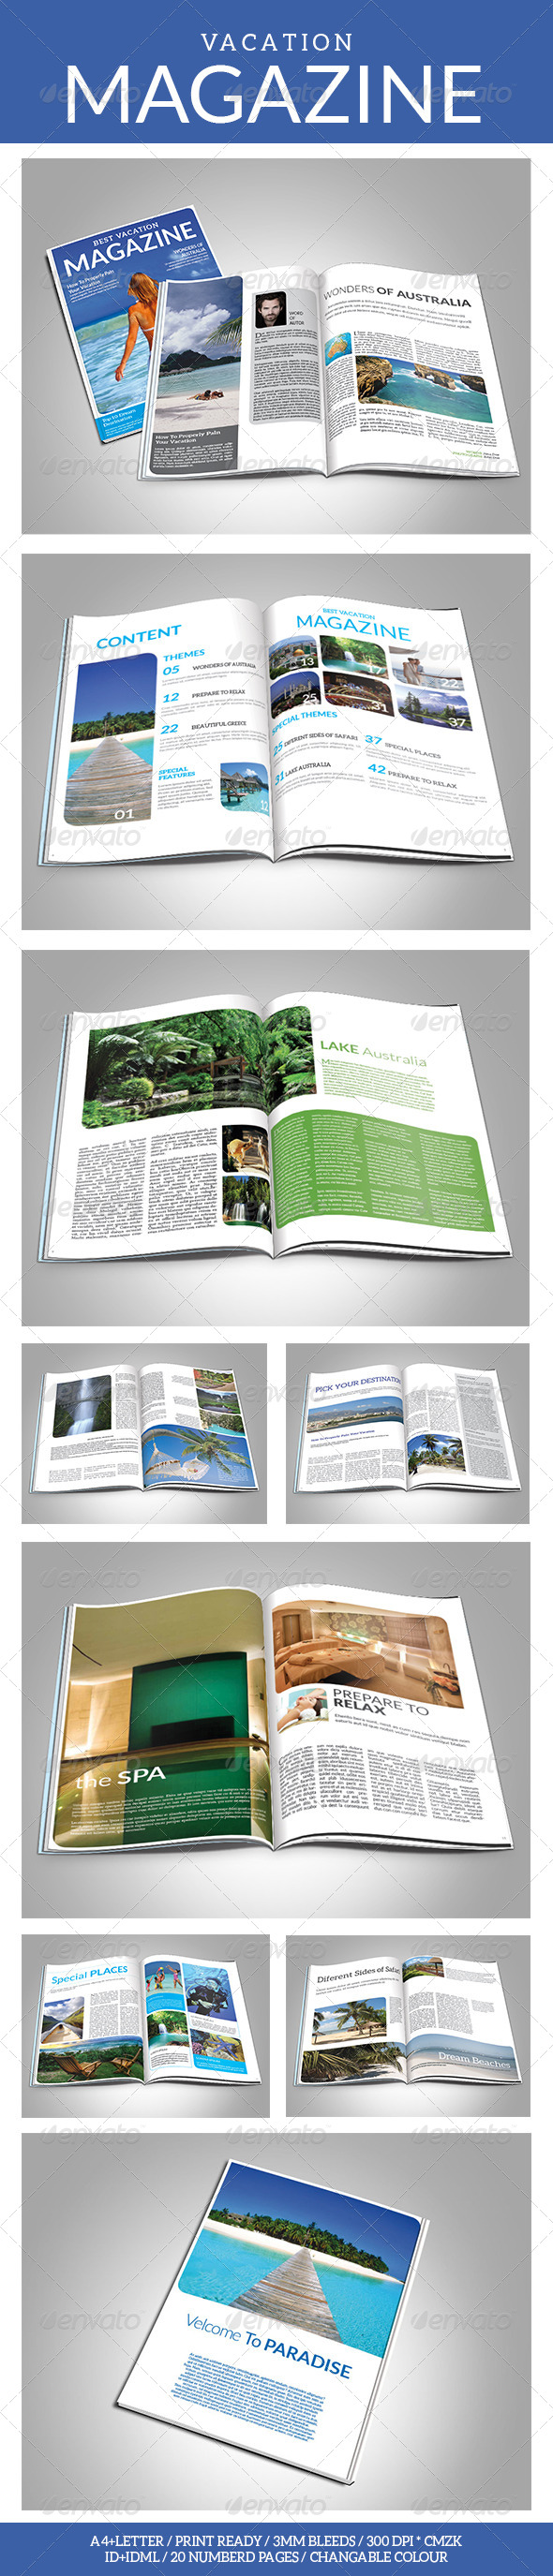 GraphicRiver Vacation Magazine Template 7123402